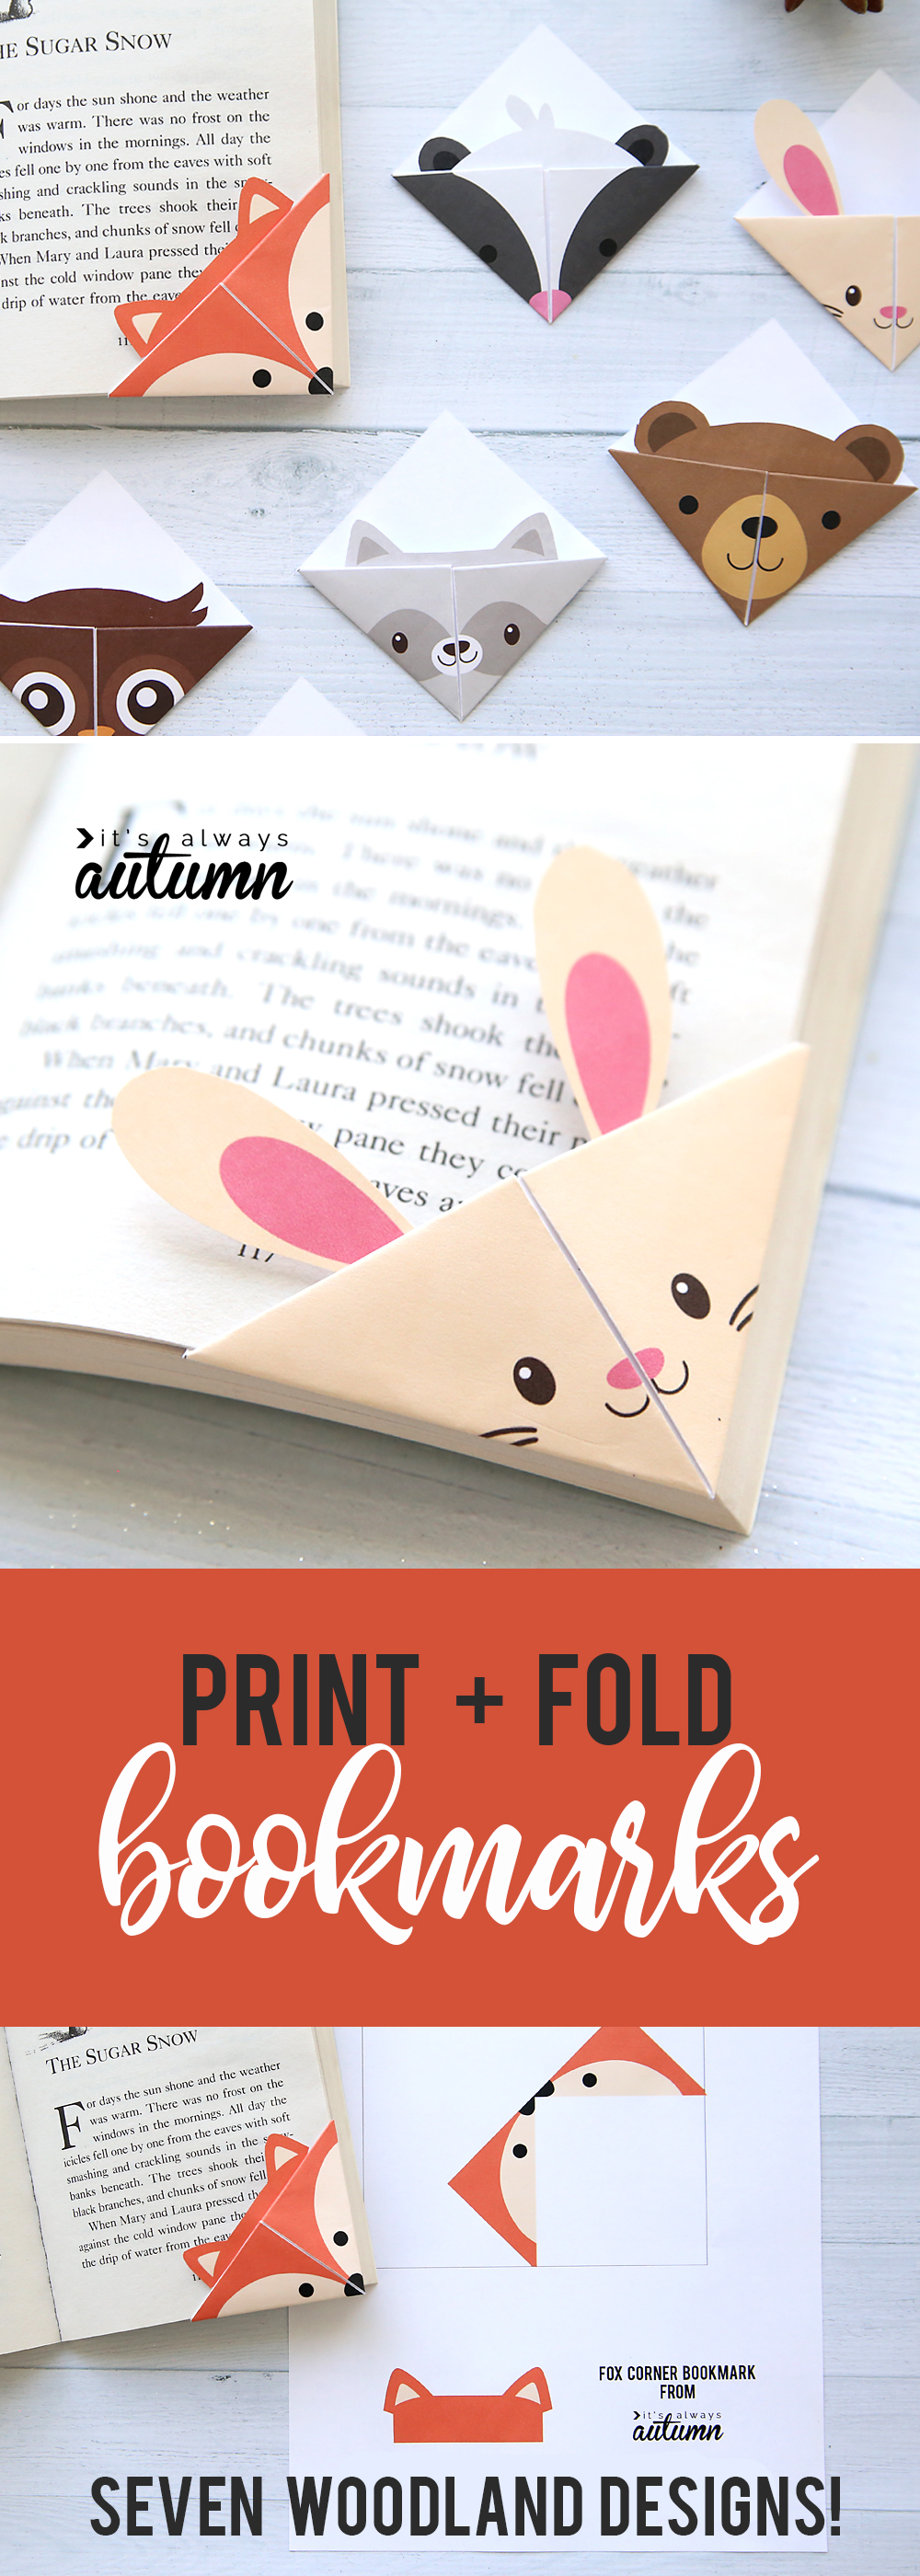 how-to-make-origami-bookmark-corner-bookmark-woodland-creatures-free-printable-1.jpg